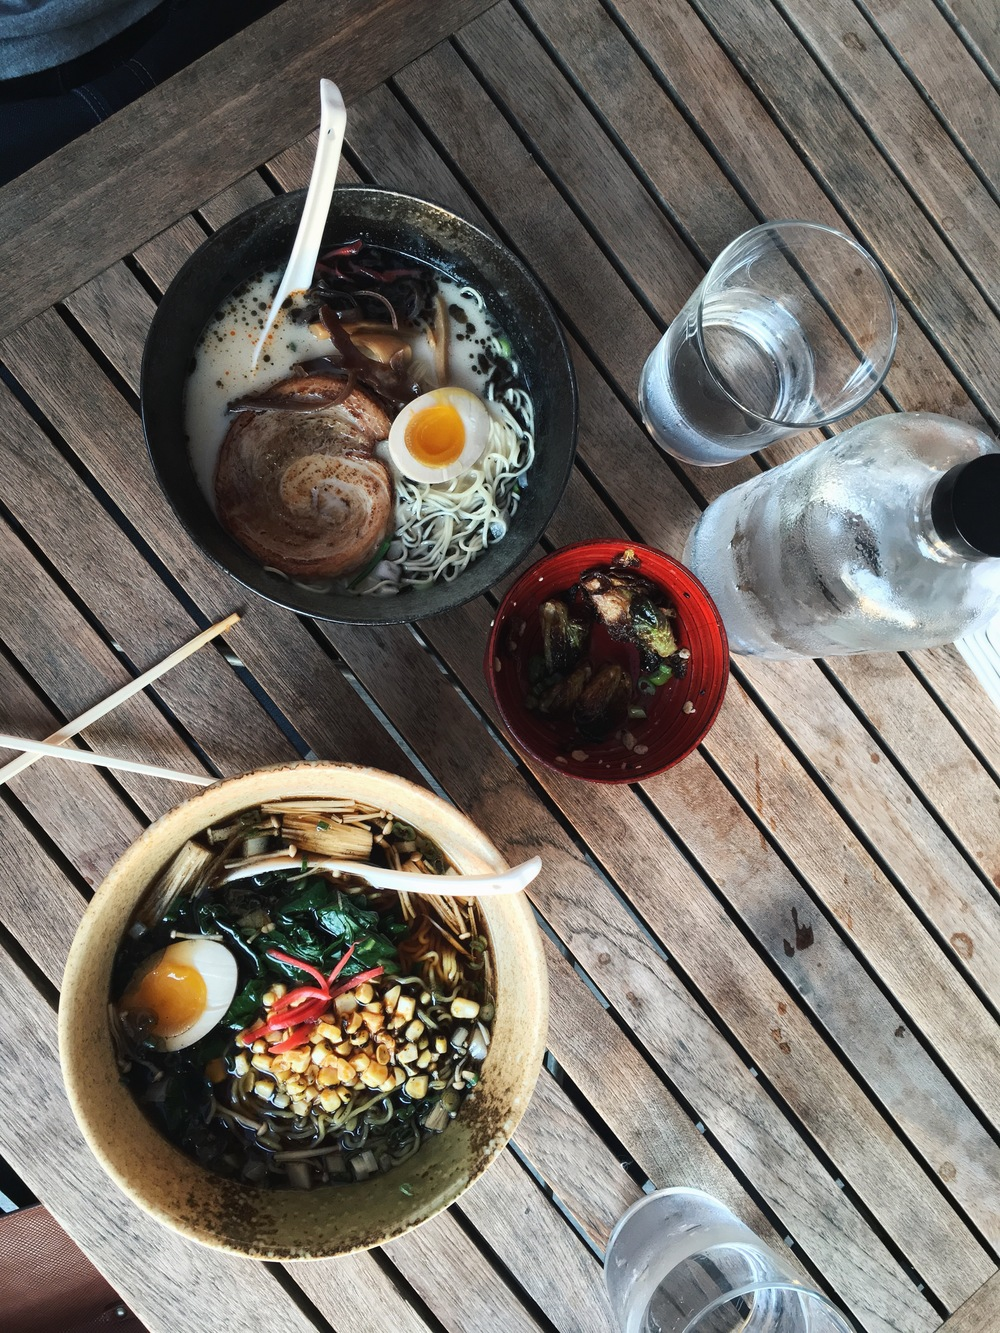 One thing I'm already looking forward to about winter: hot broth bowls brimming with porky, eggy, savoury goodness. Ramen creds:  Two Ten Jack . May not have a sign in the door, but they have corn in their ramen. And that's what's important.